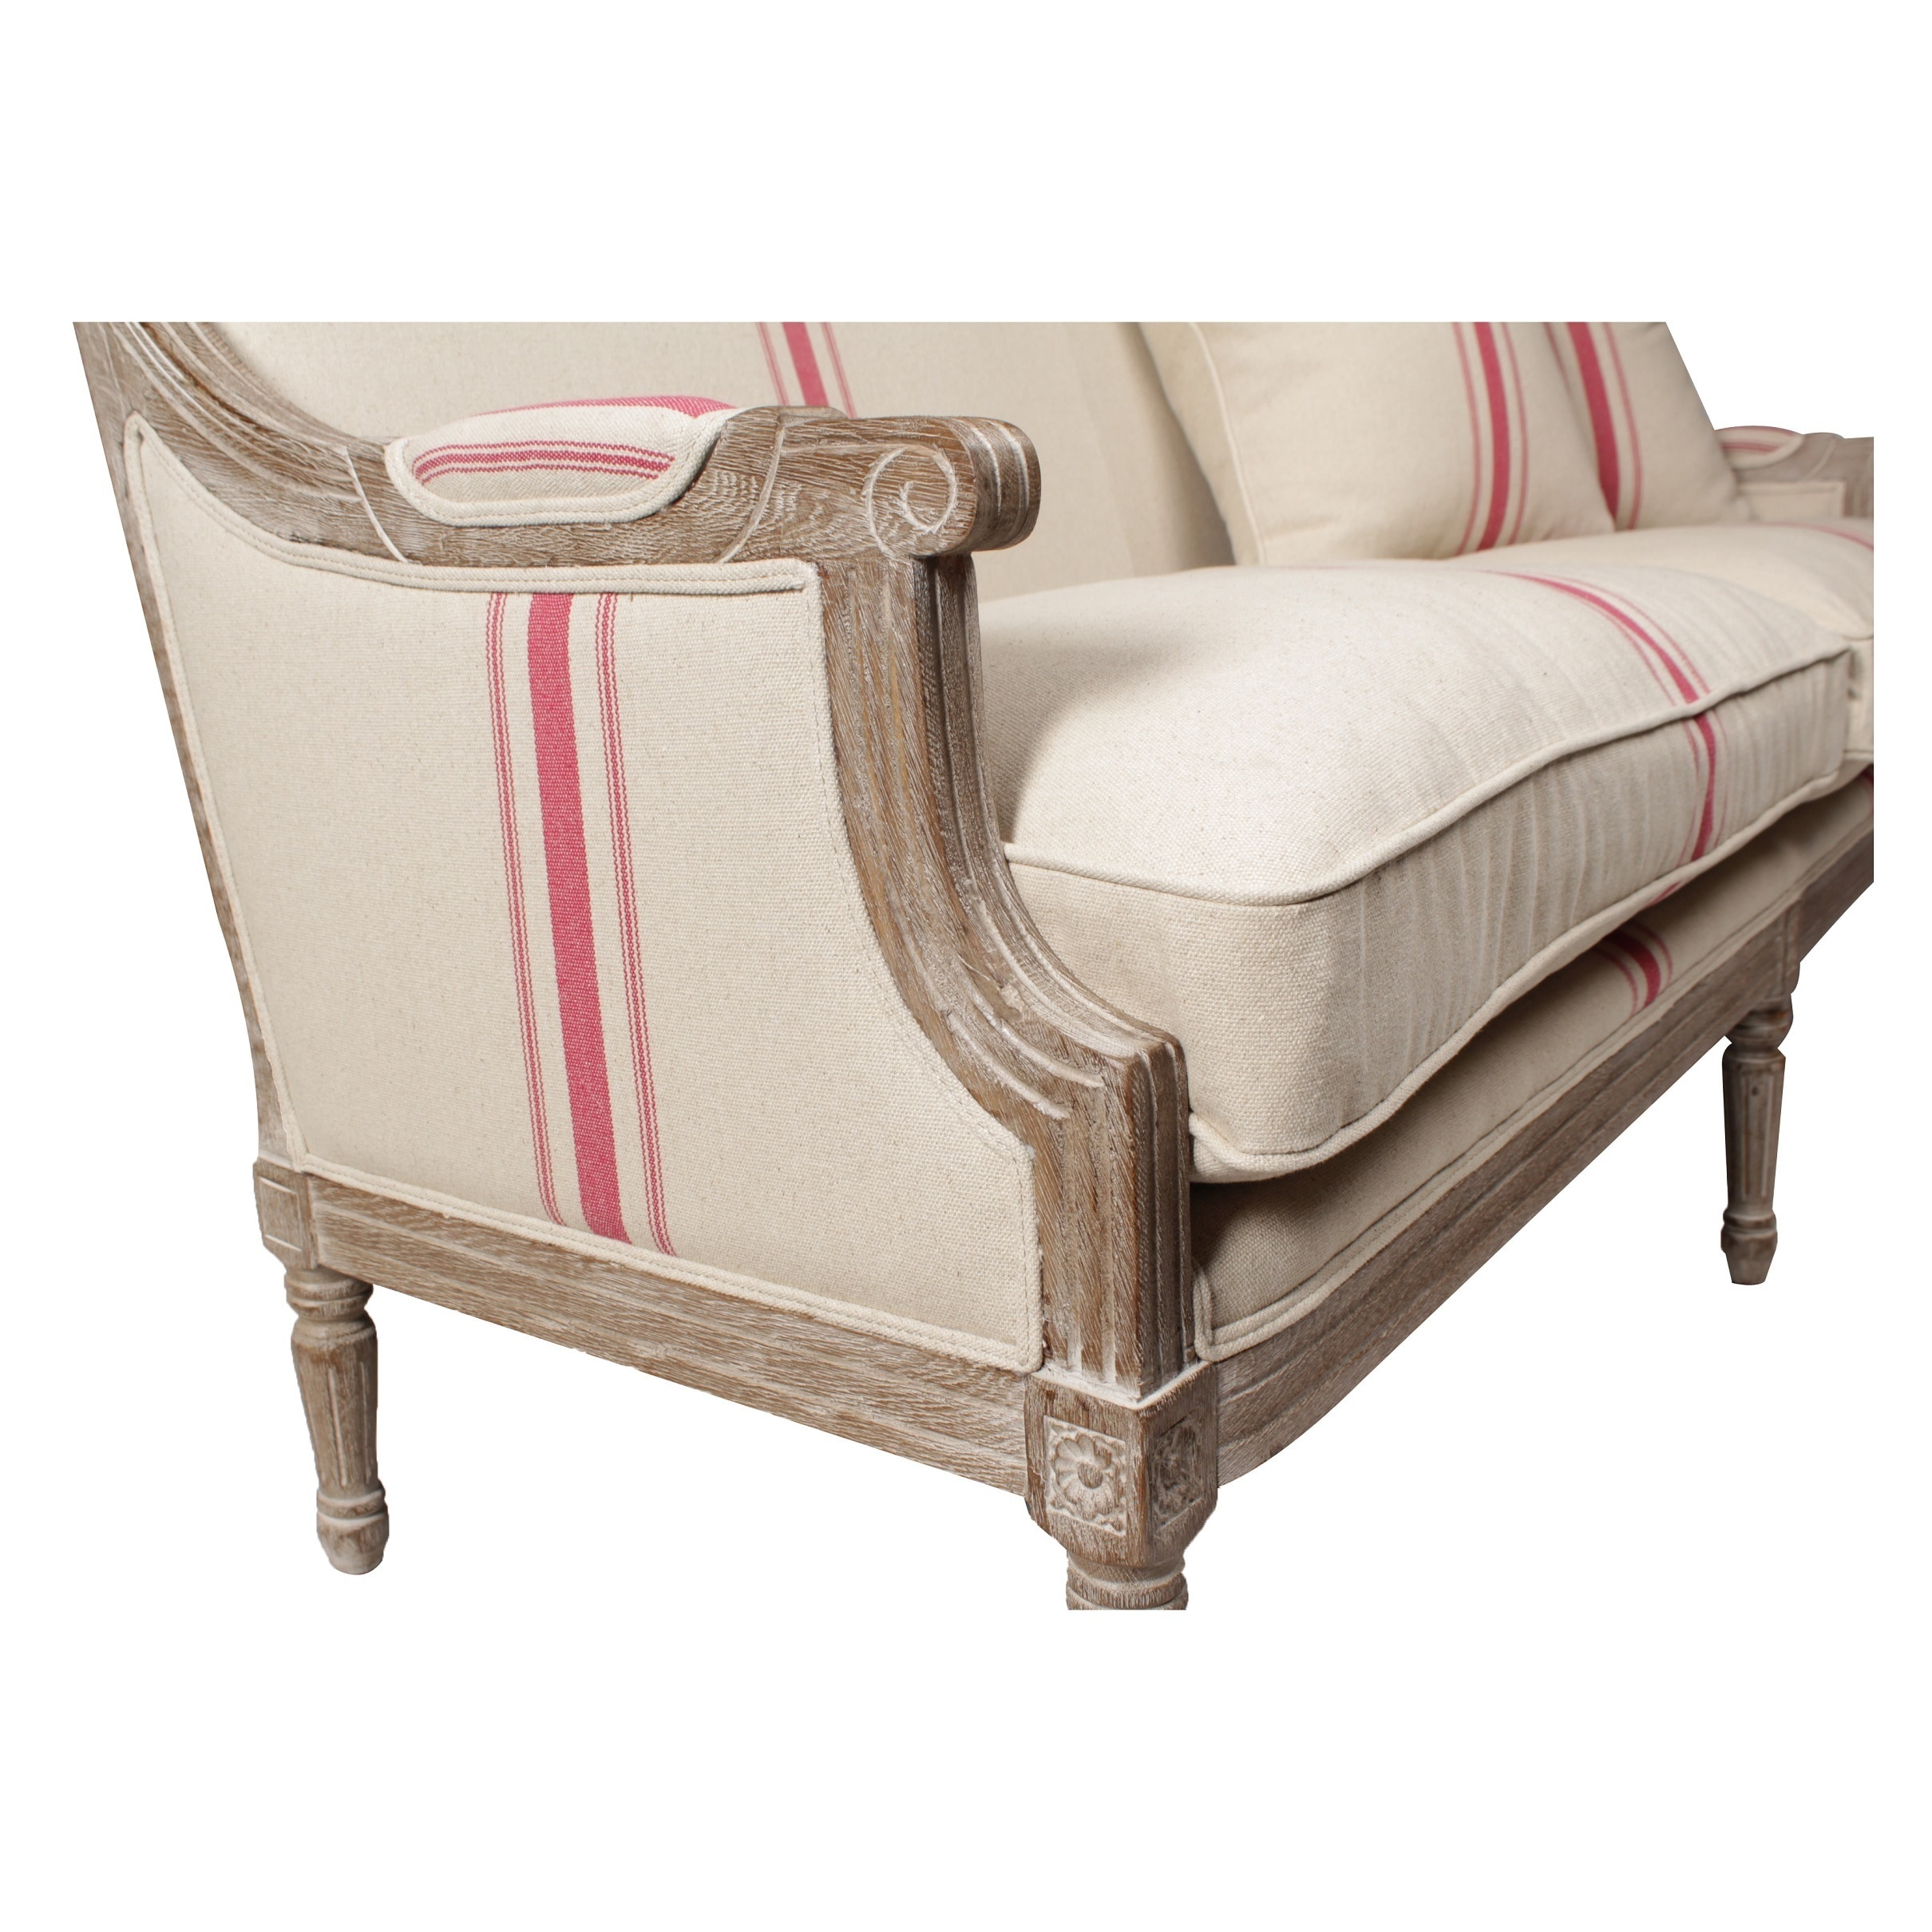 Shop Lafontaine Sofa, Red Stripe   Free Shipping Today   Overstock.com    12653661